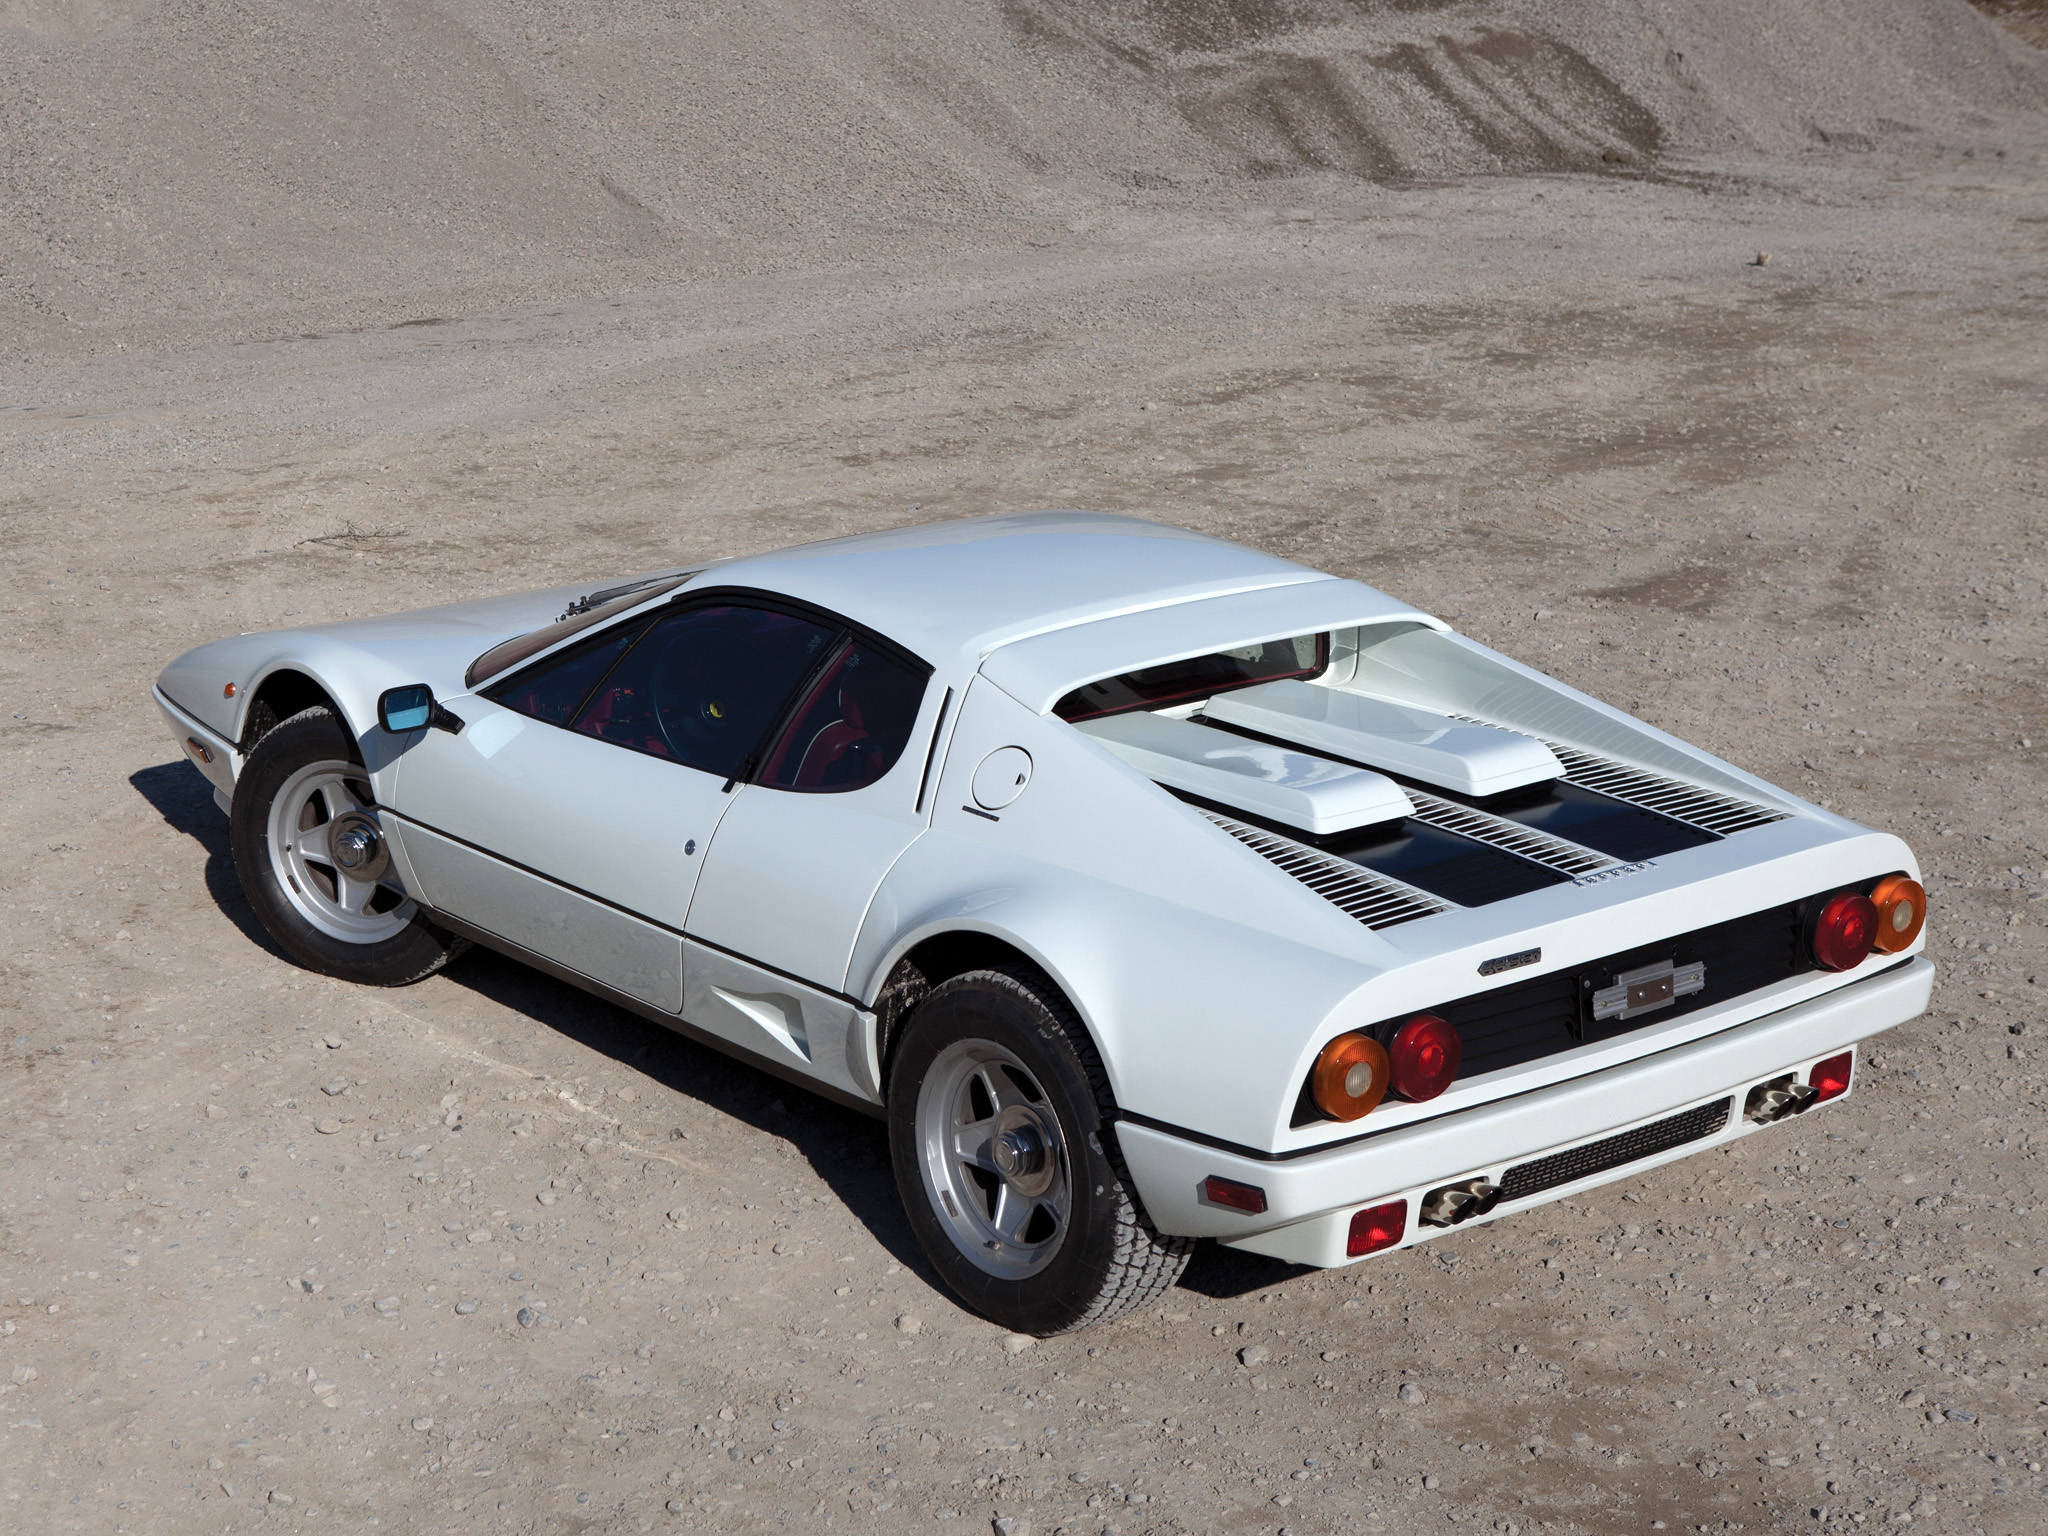 1000 Images About Bb On Pinterest: 1000+ Images About Ferrari 512 BB On Pinterest